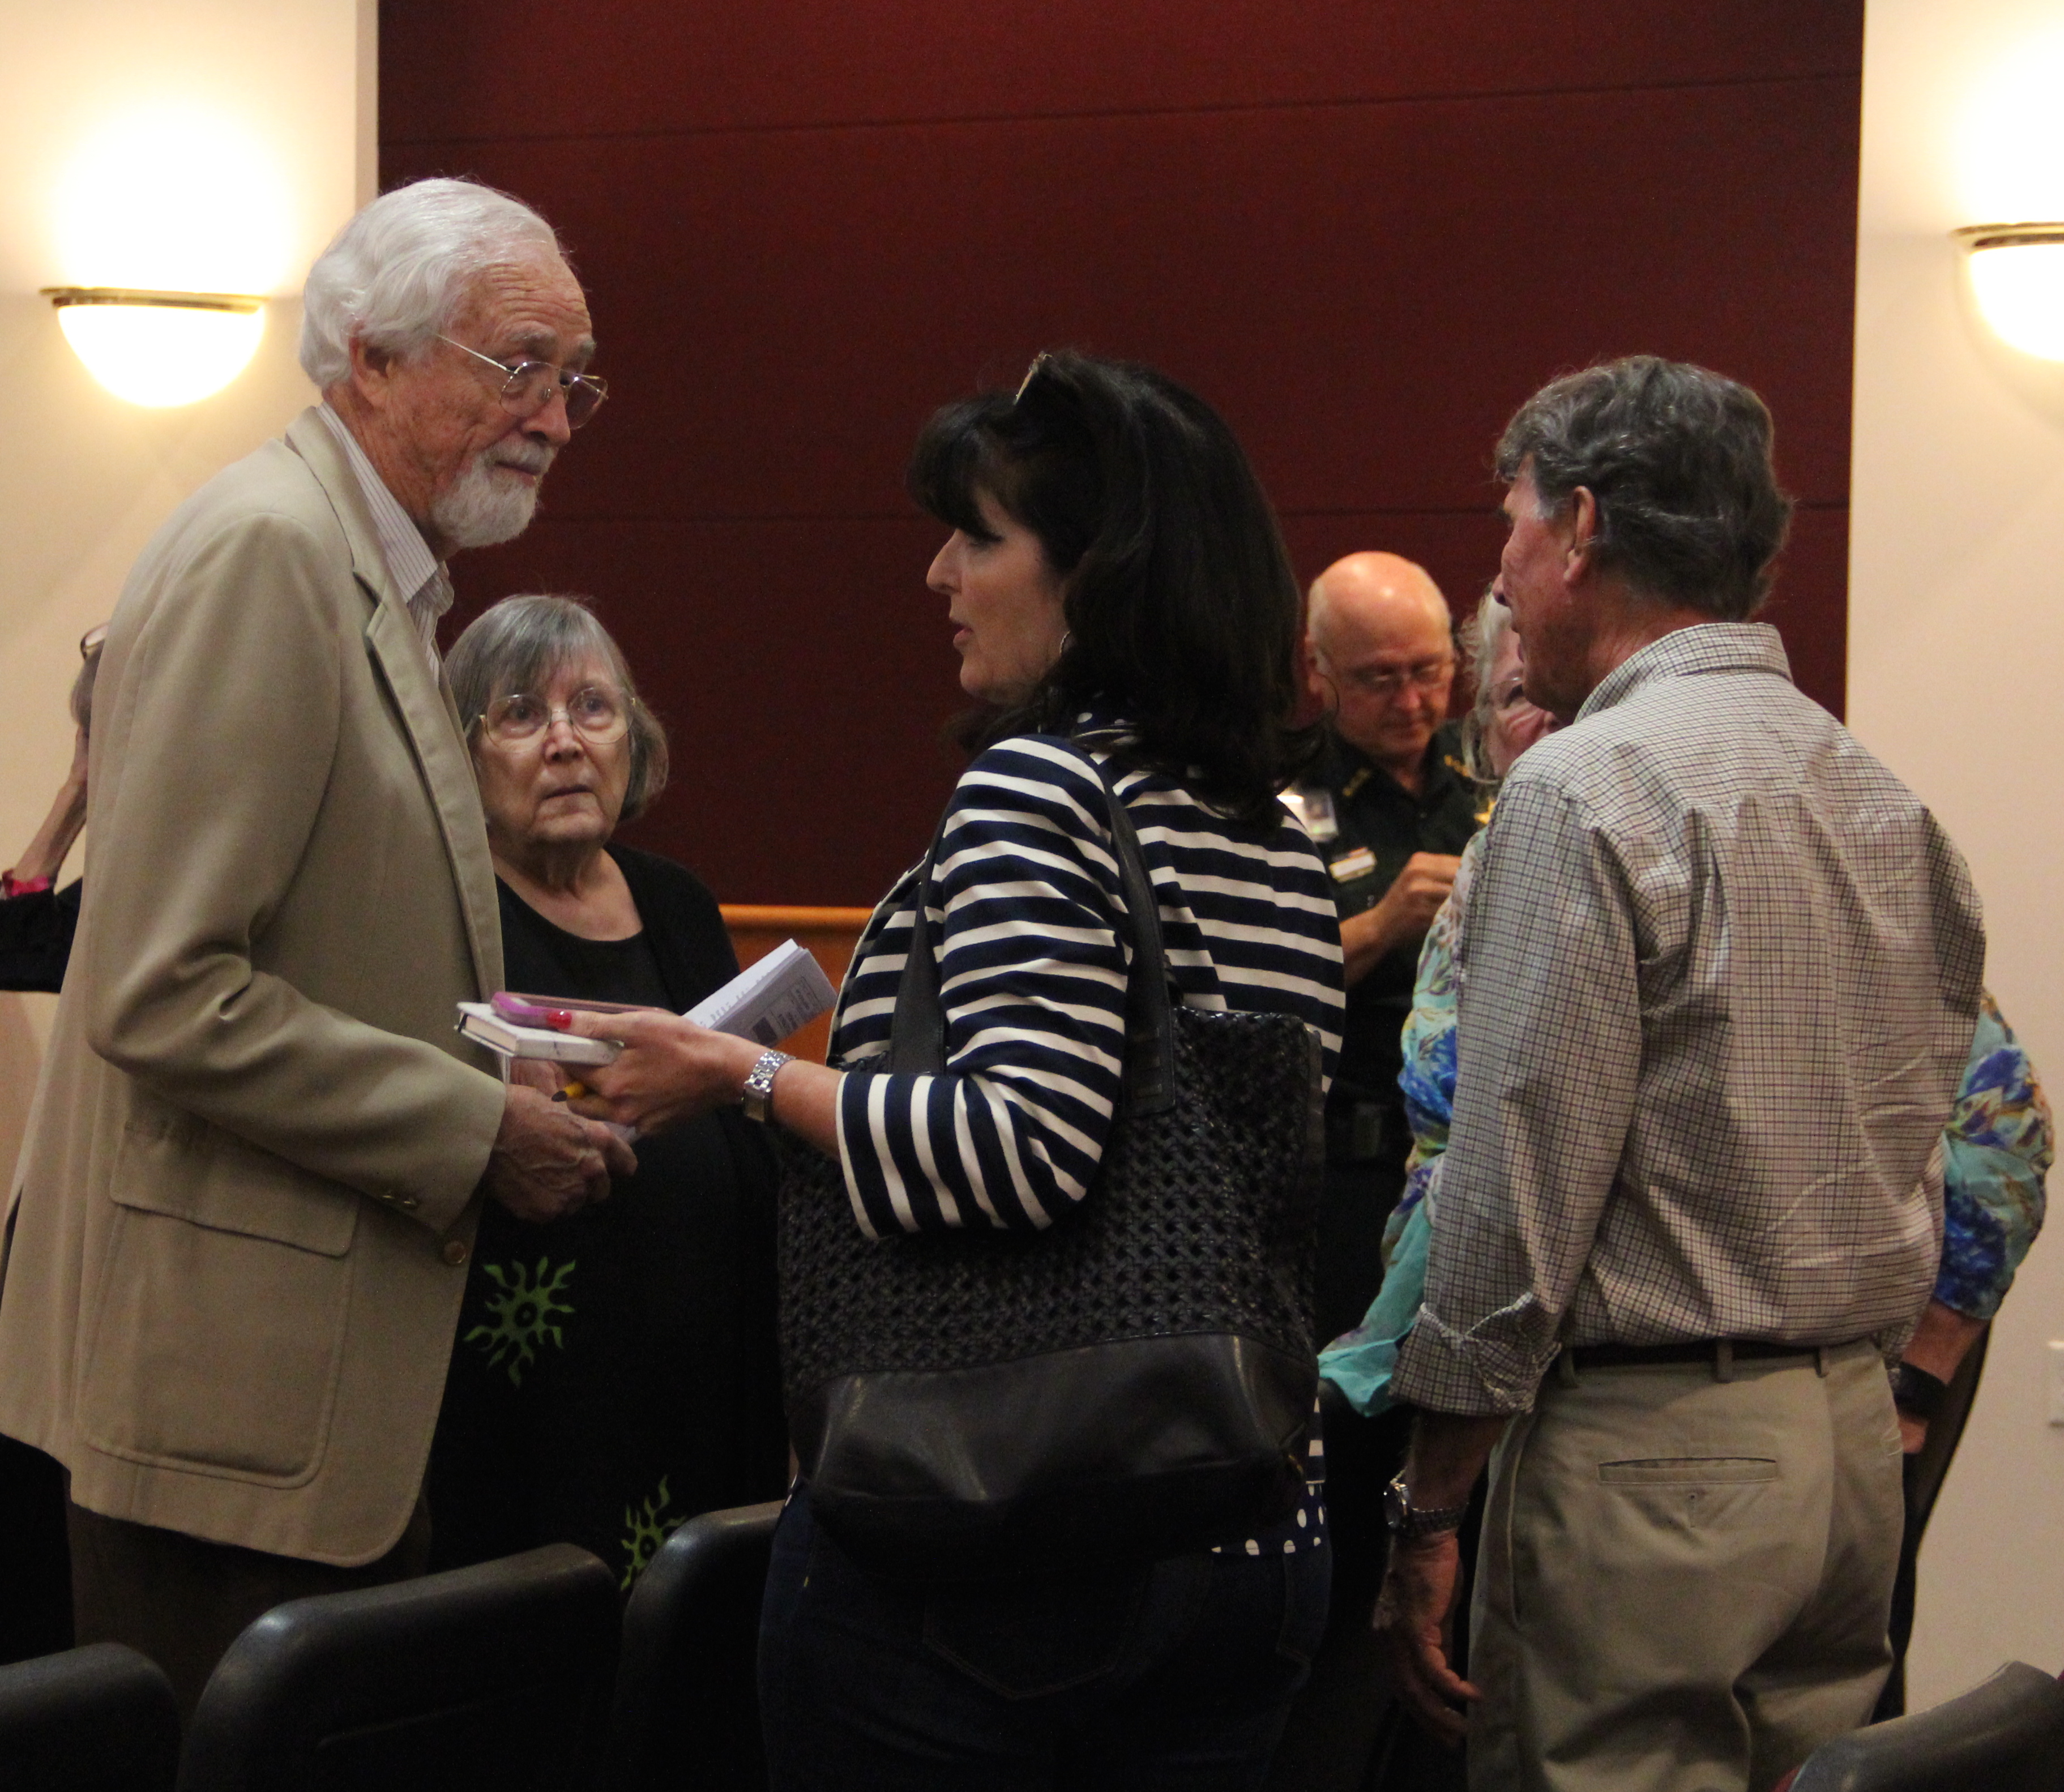 (From left) Wade Matthews of Sarasota Audubon, Kafi Benz of the Sarasota County Council of Neighborhood Associations (CONA), Cathy Antunes of CONA and architect Bill Zoller confer during a break in the meeting. Rachel Hackney photo